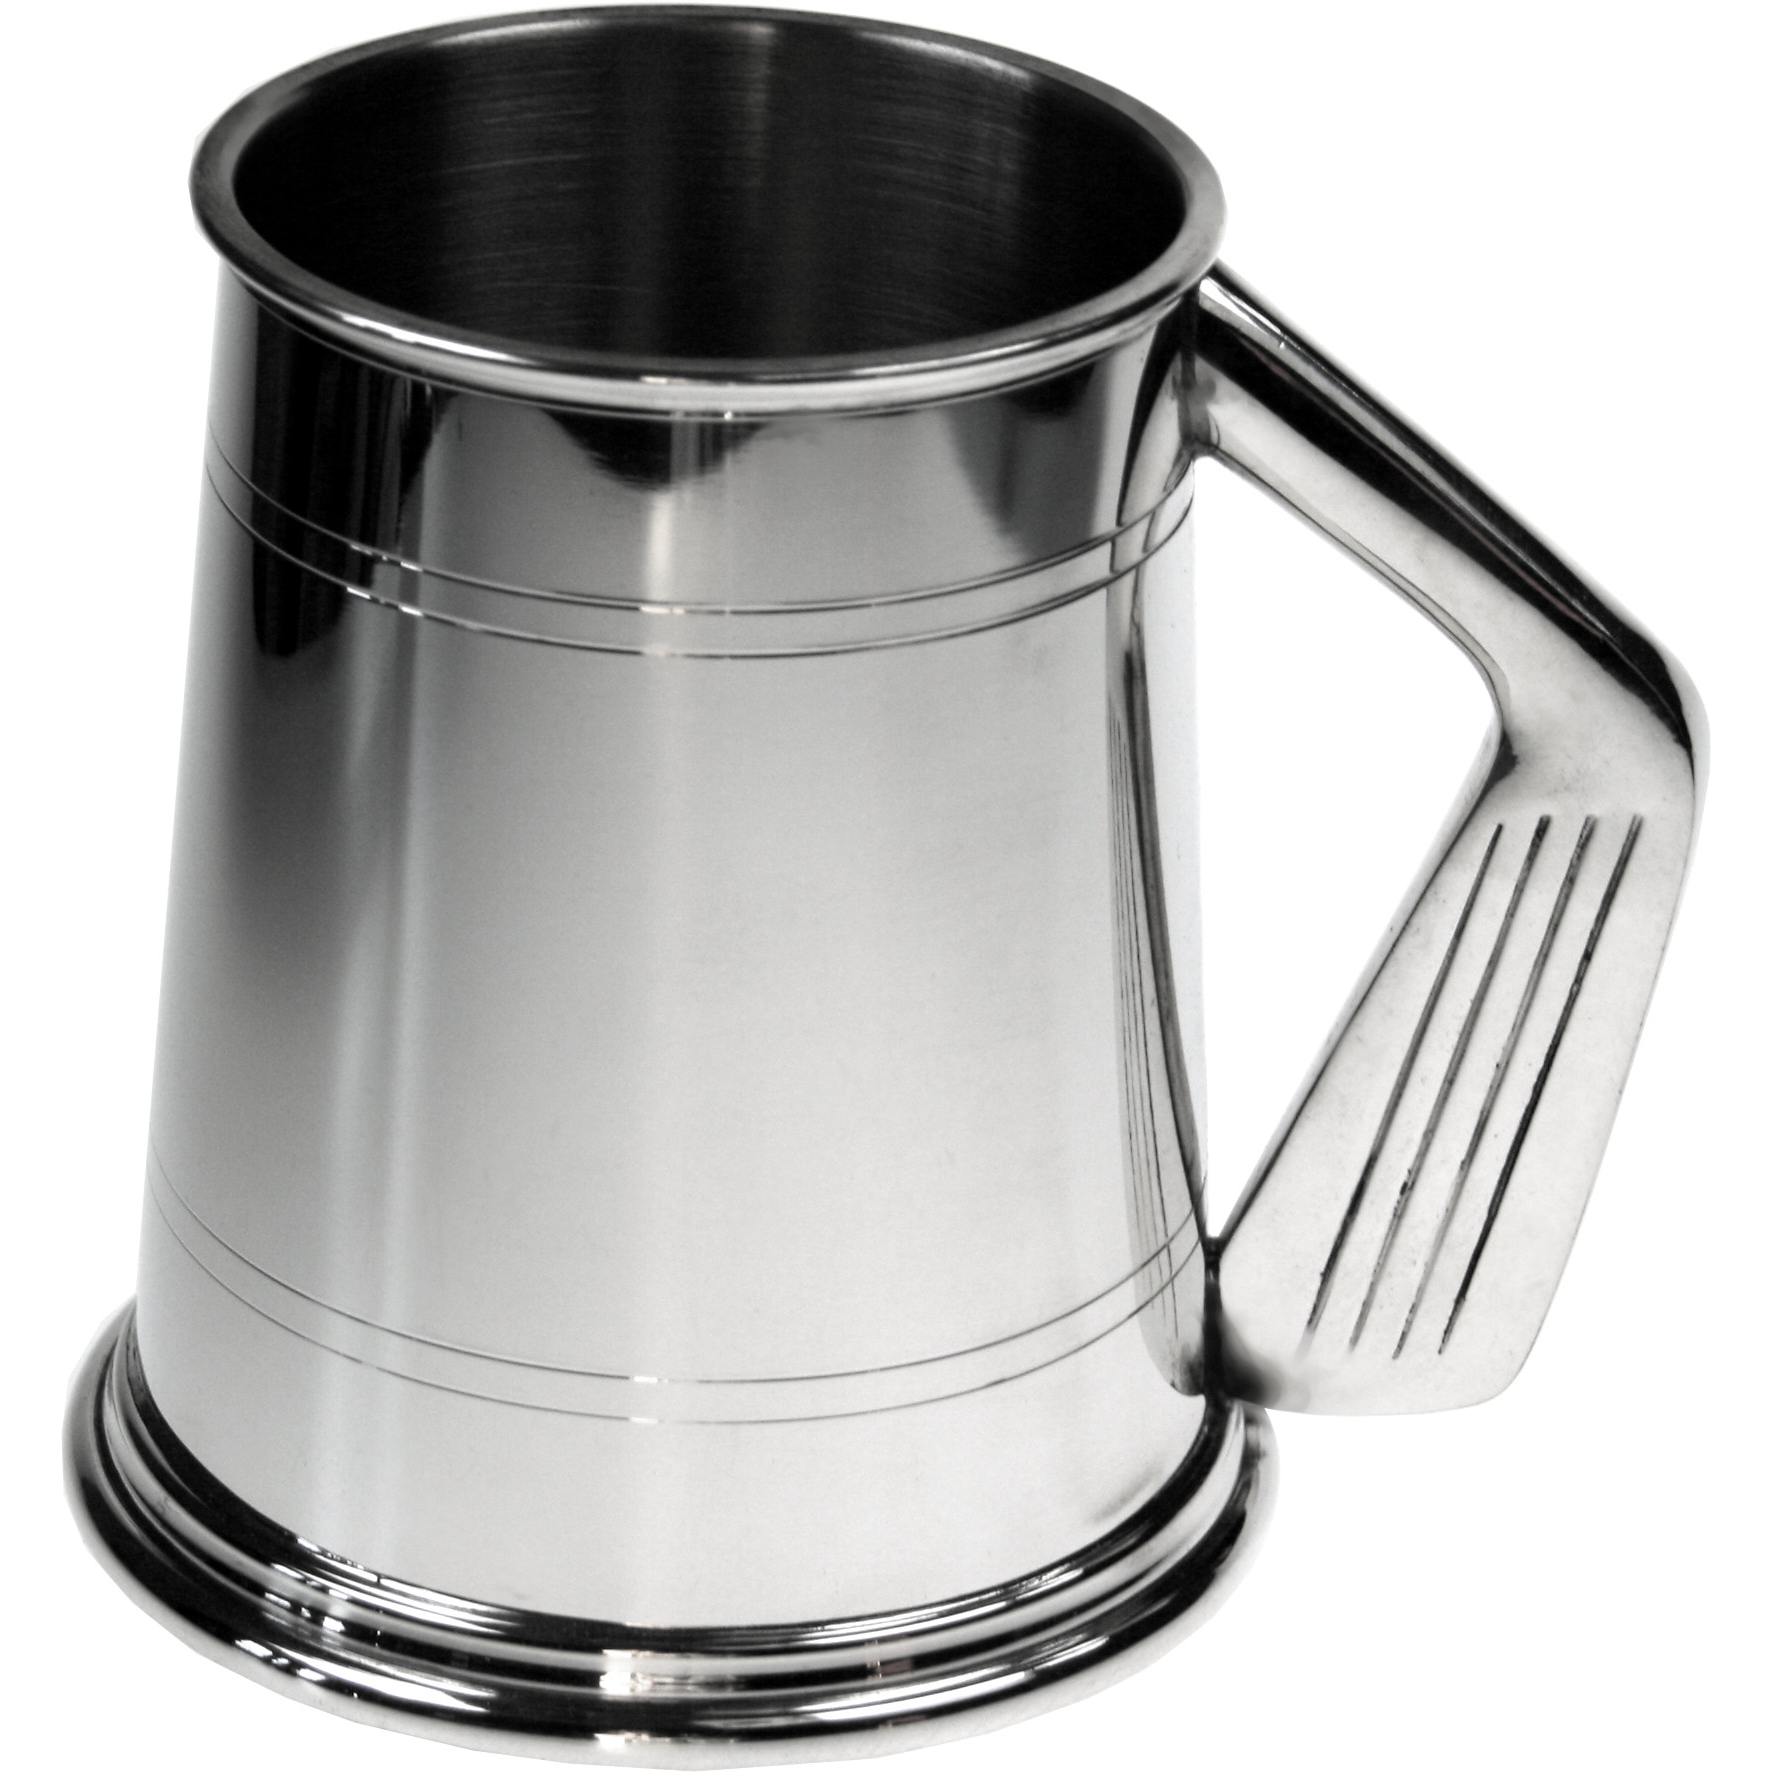 Golf Club Handle Tankard. Constructed from English pewter by expert craftsmen. A traditional one pint sized two lined tankard with the handle in the shape of a golf wedge. Also presented in a standard packing box.